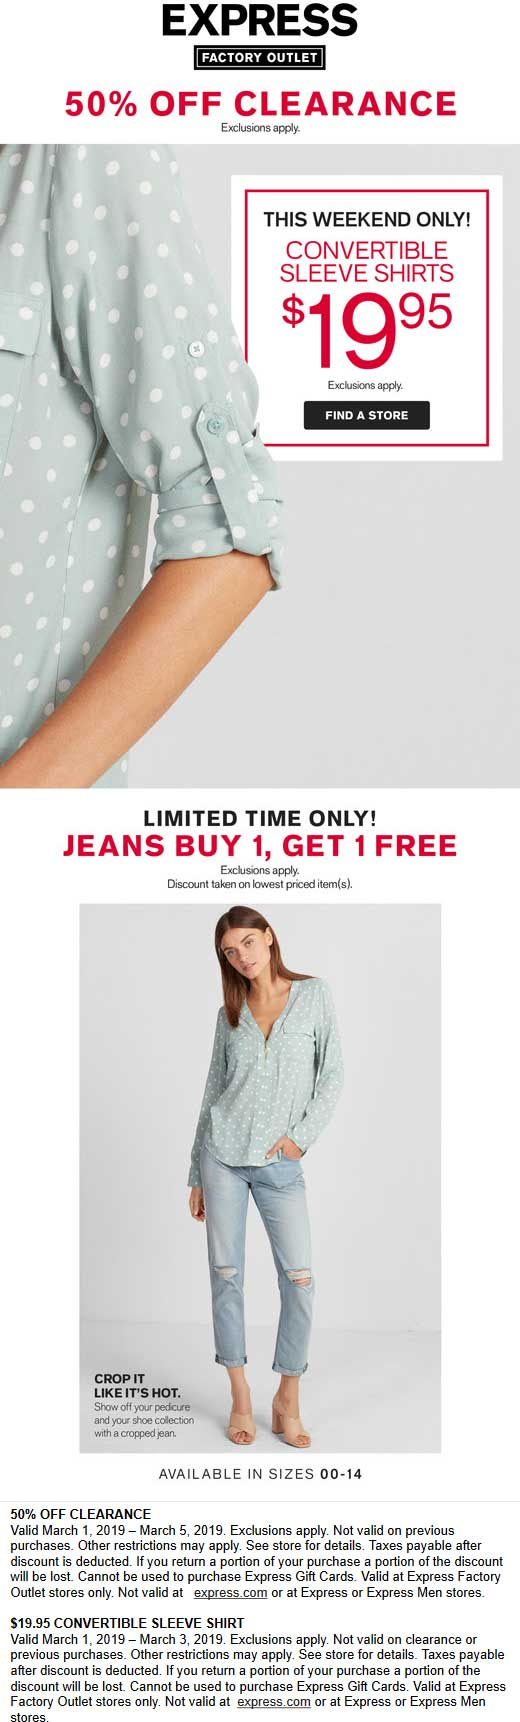 Express Factory Outlet coupons & promo code for [January 2021]